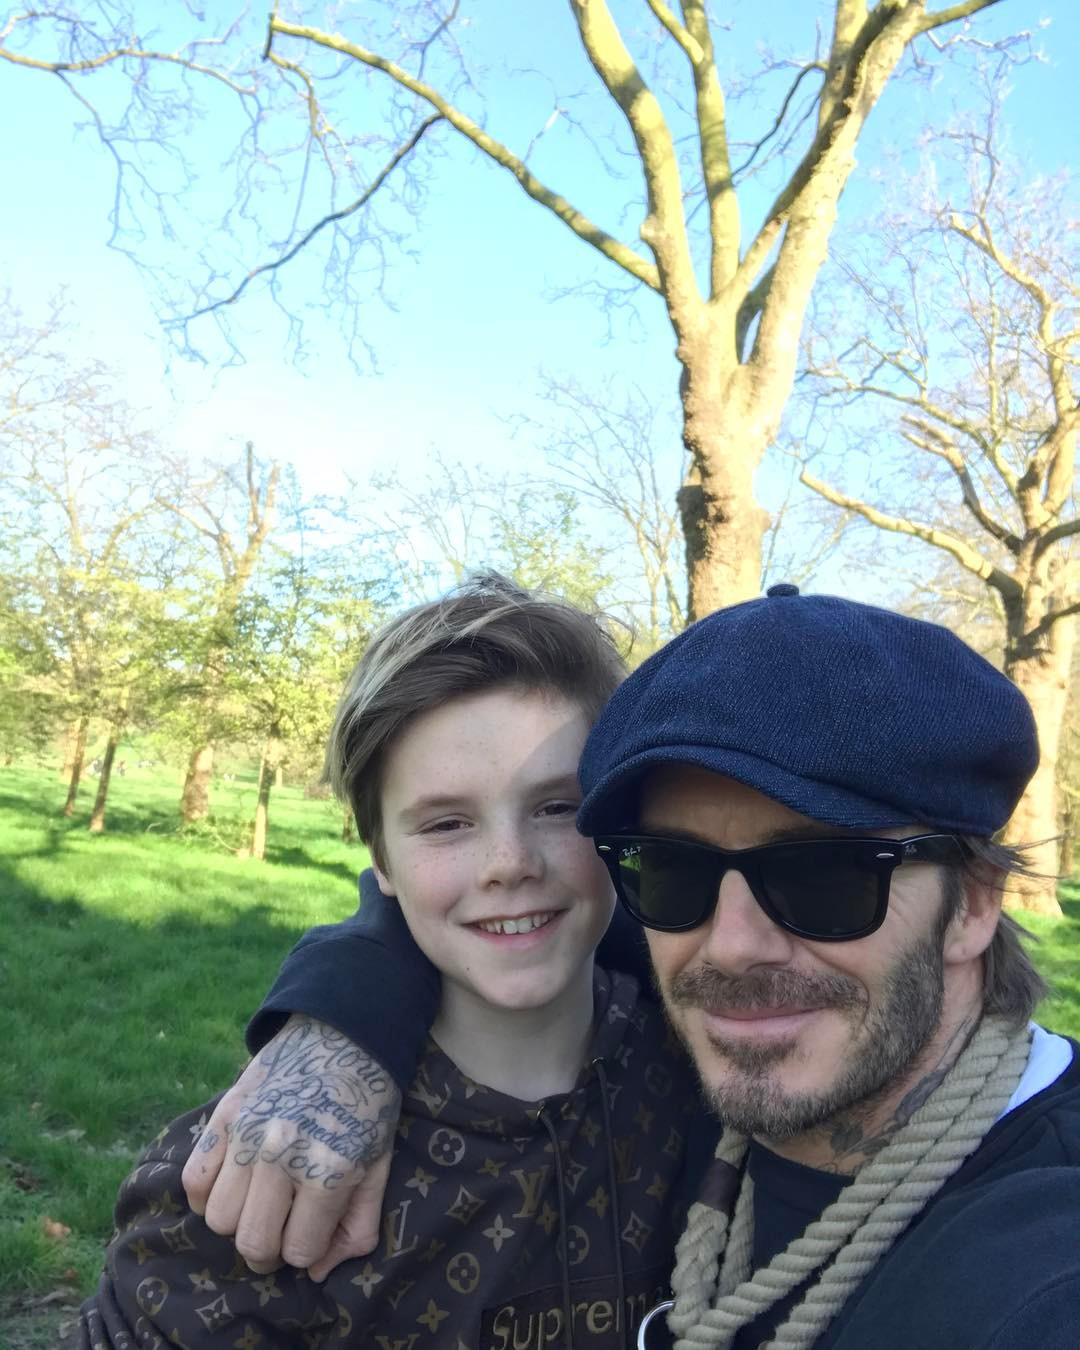 David Beckham Instagram: Nice walk in the park with Cruzie & Olive  London is beautiful  ...